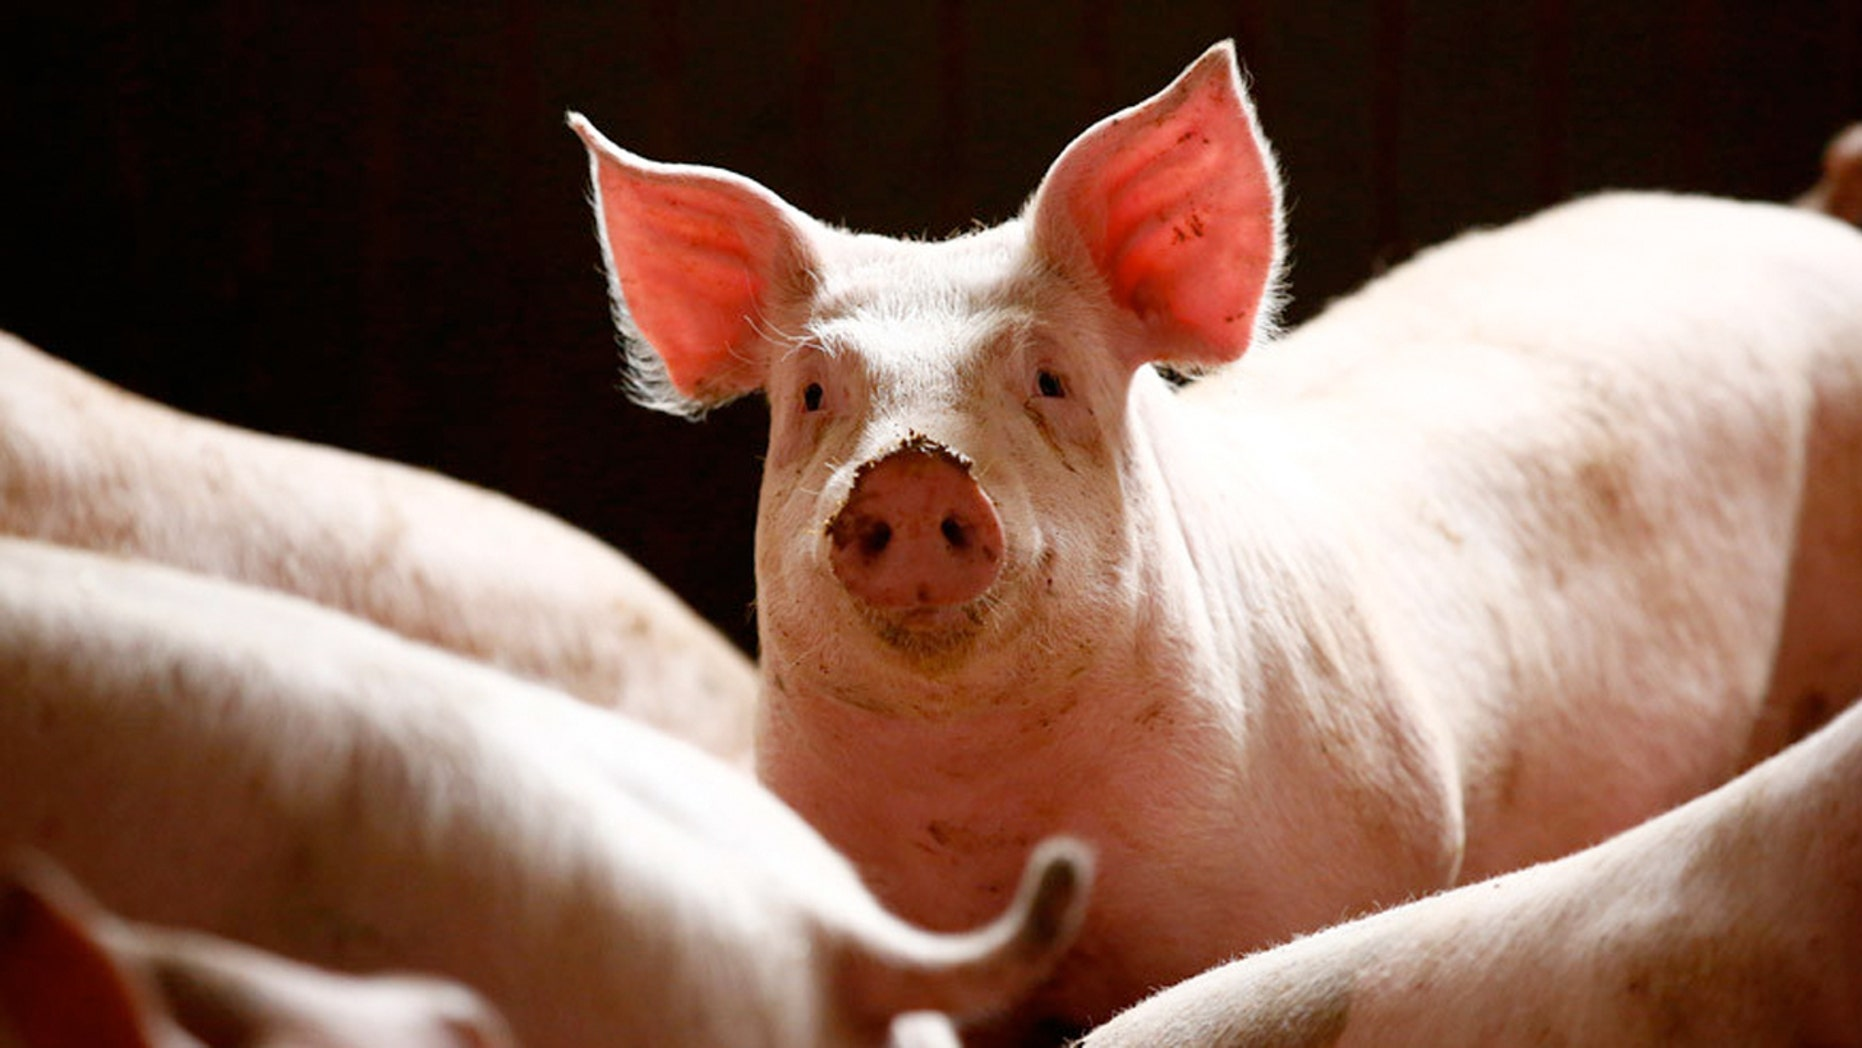 Randers, central Denmark, has made it mandatory for pork to always be on the menu in municipal canteens, drawing praise from the anti-immigration lobby which promotes 'Danish food culture.'